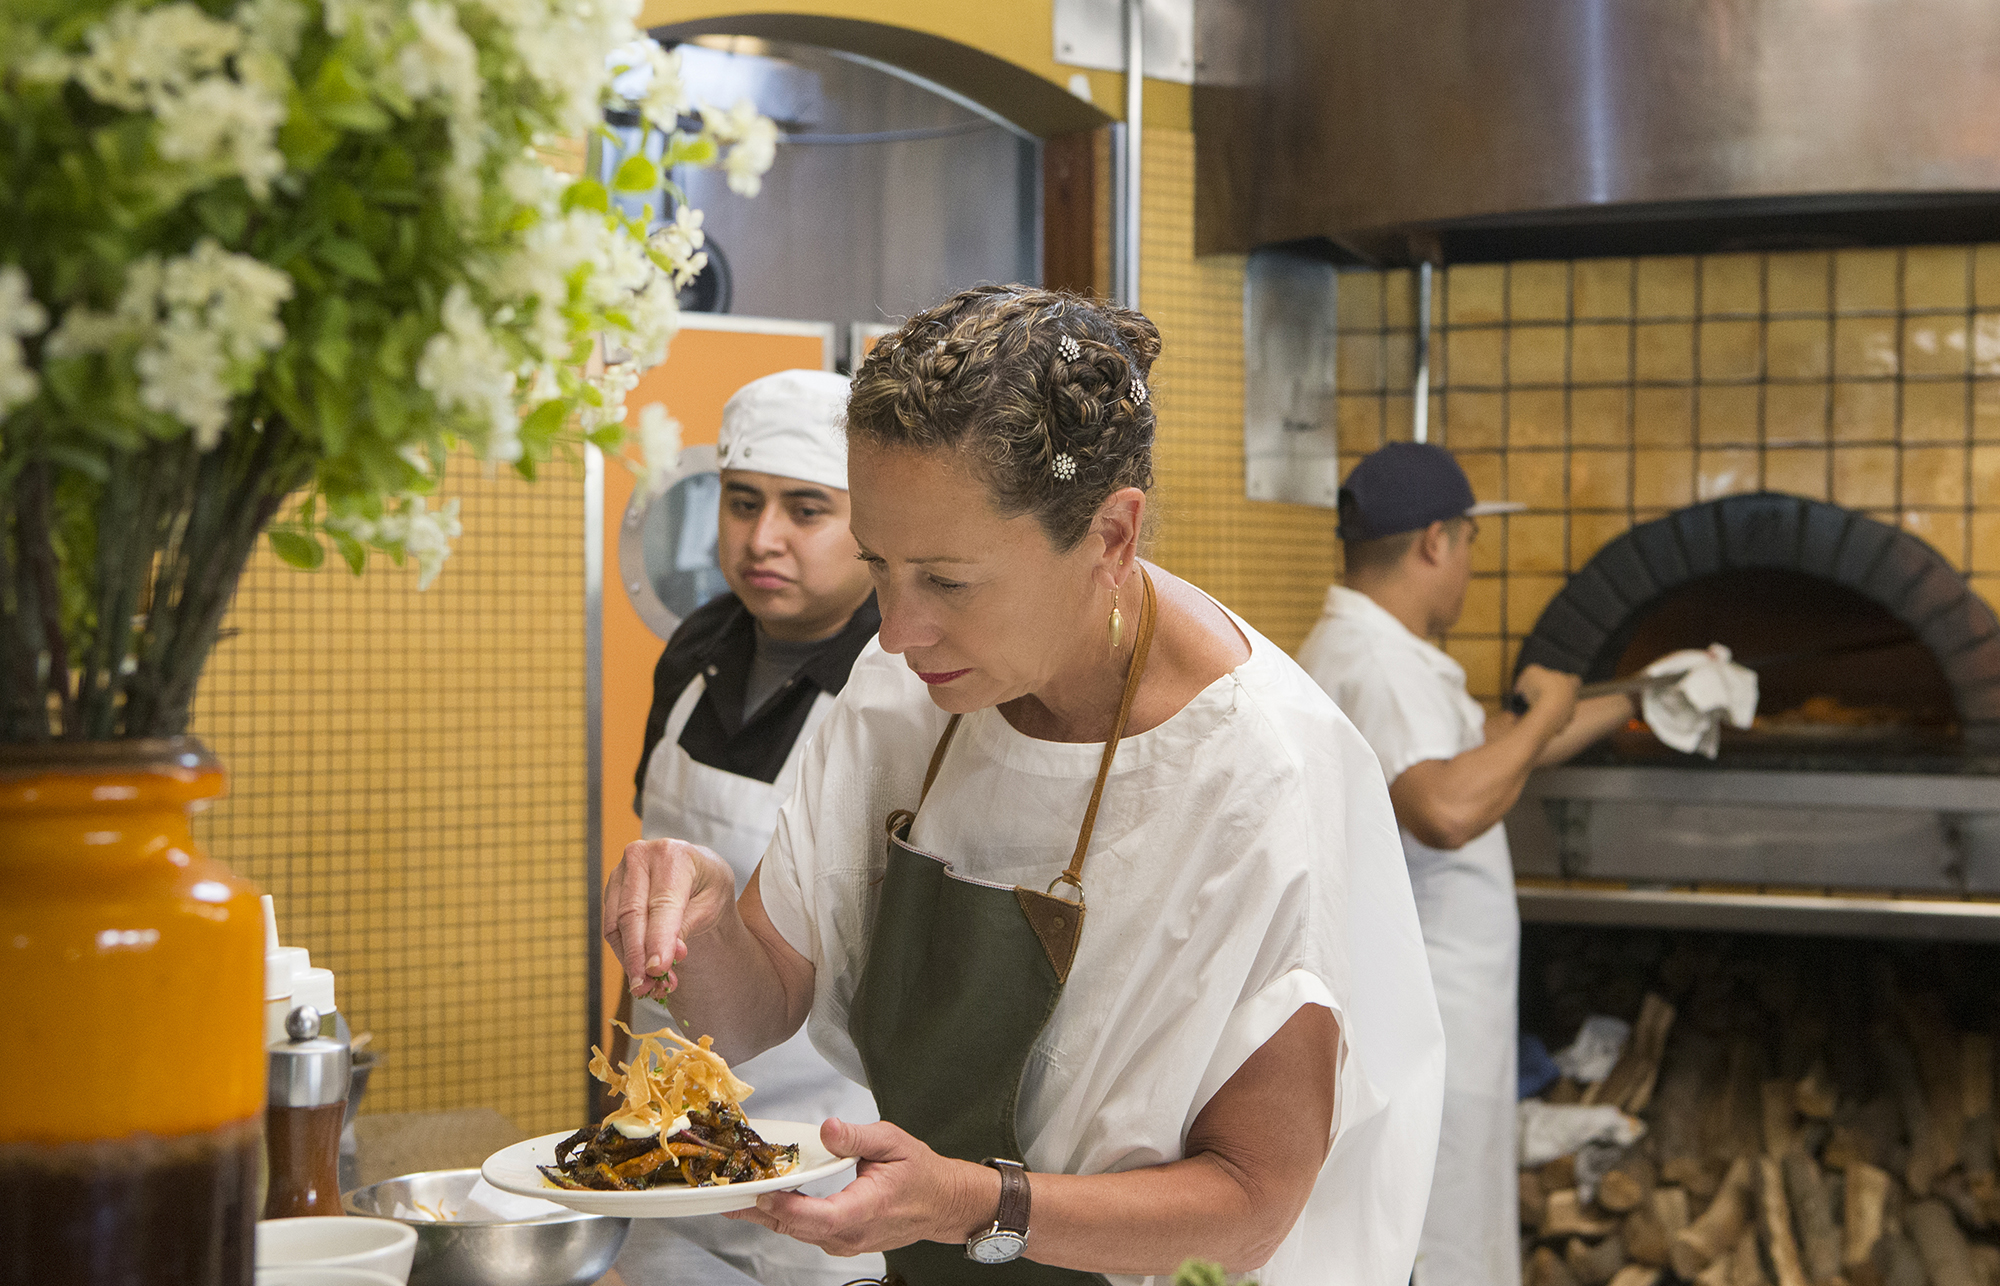 The 5 Best Food TV Episodes of 2017